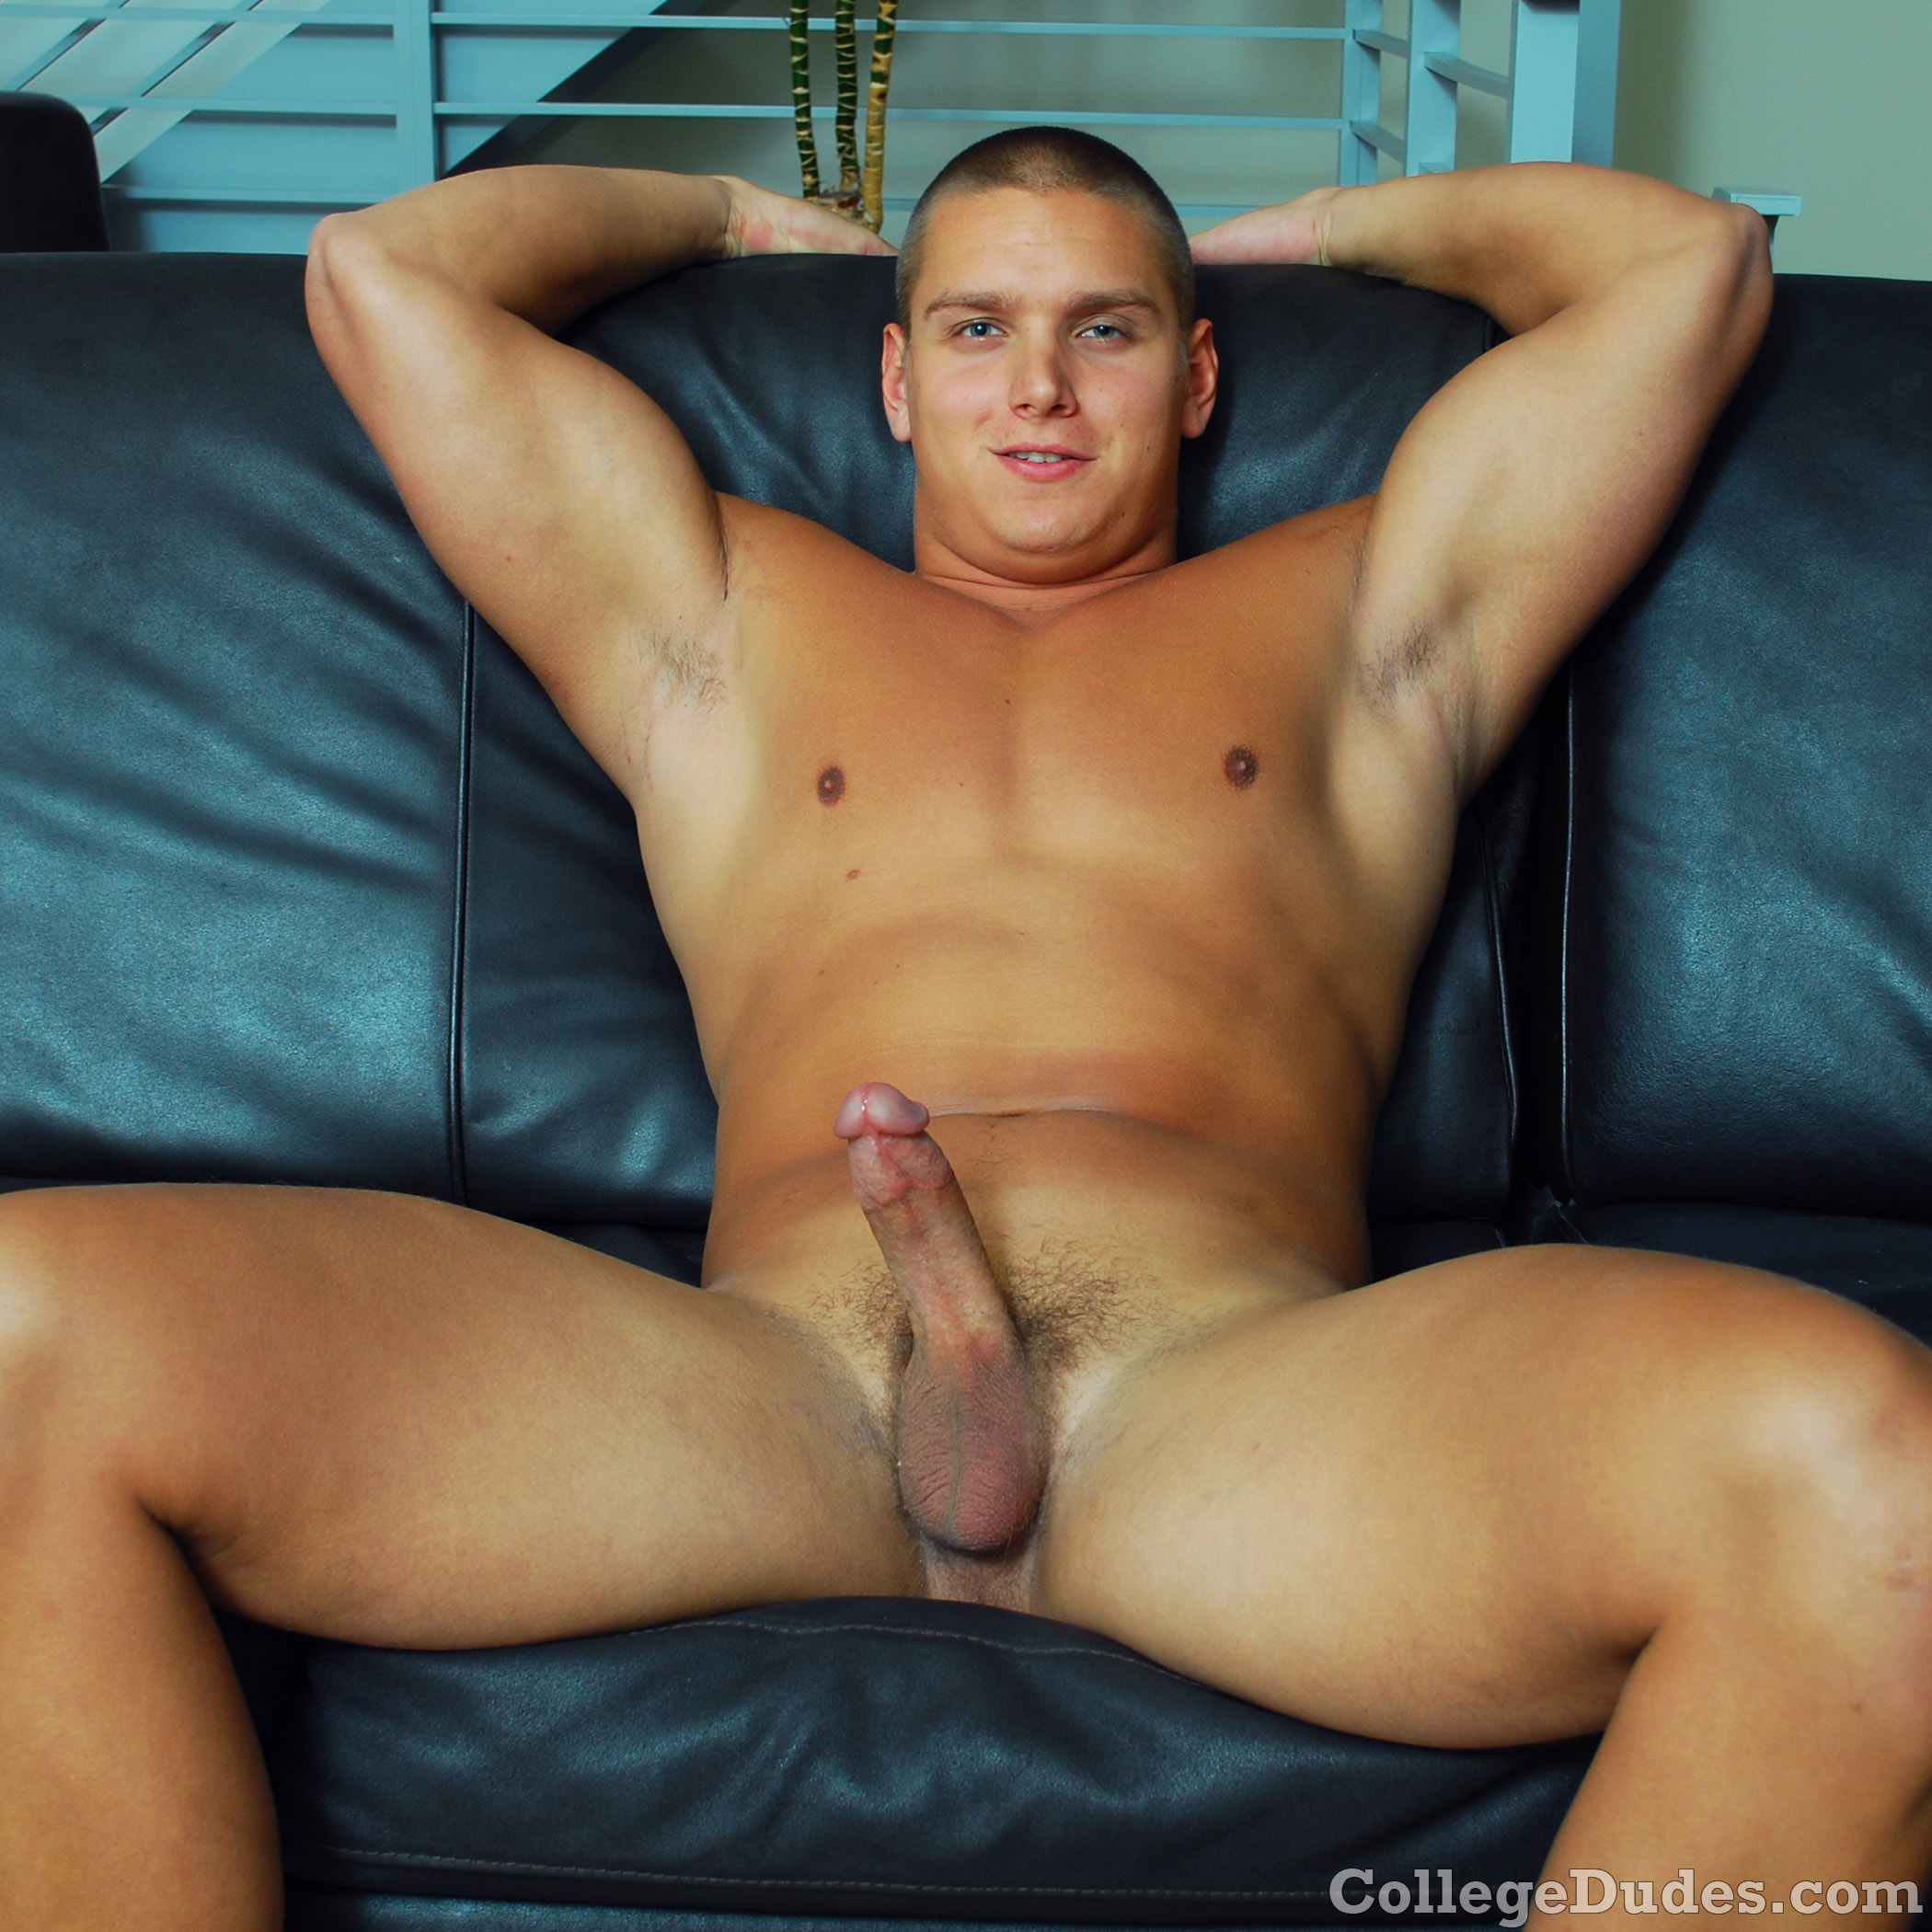 Hot Guy Jacking Off